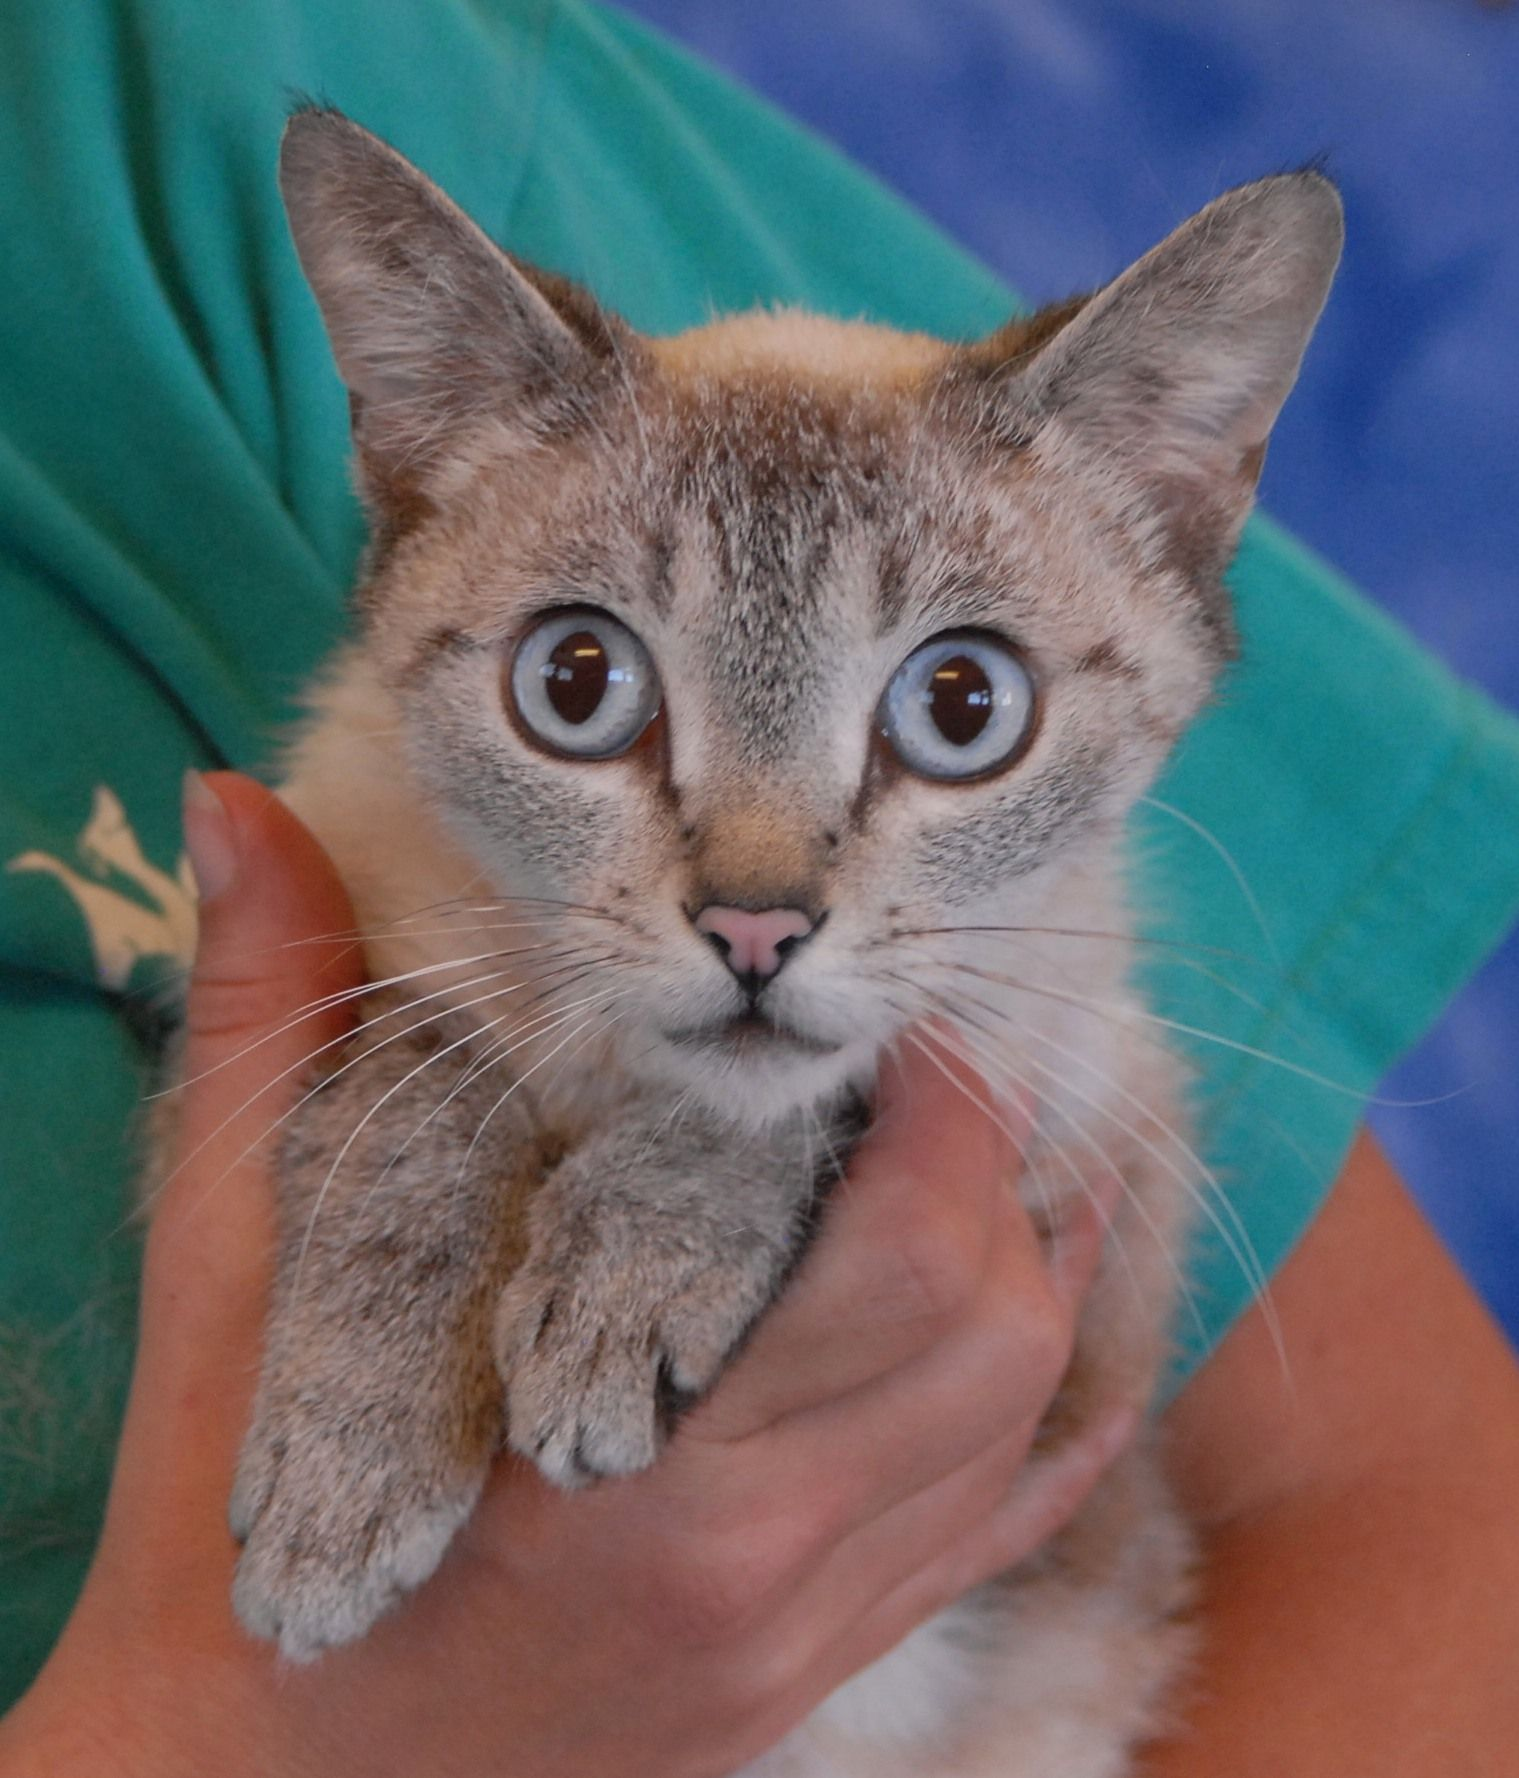 Candise is a dainty, gorgeous little lady who heartily purrs in your arms.  She is a Lynx Point Siamese, 3 years of age, now spayed and debuting for adoption at Nevada SPCA (www.nevadaspca.org).  Candise was pregnant at the time of rescue, left behind by previous owners who moved away without her.  She shortly thereafter had four babies.  All survived and they remain in foster care until they are old enough to be spayed/neutered and ready for adoption.